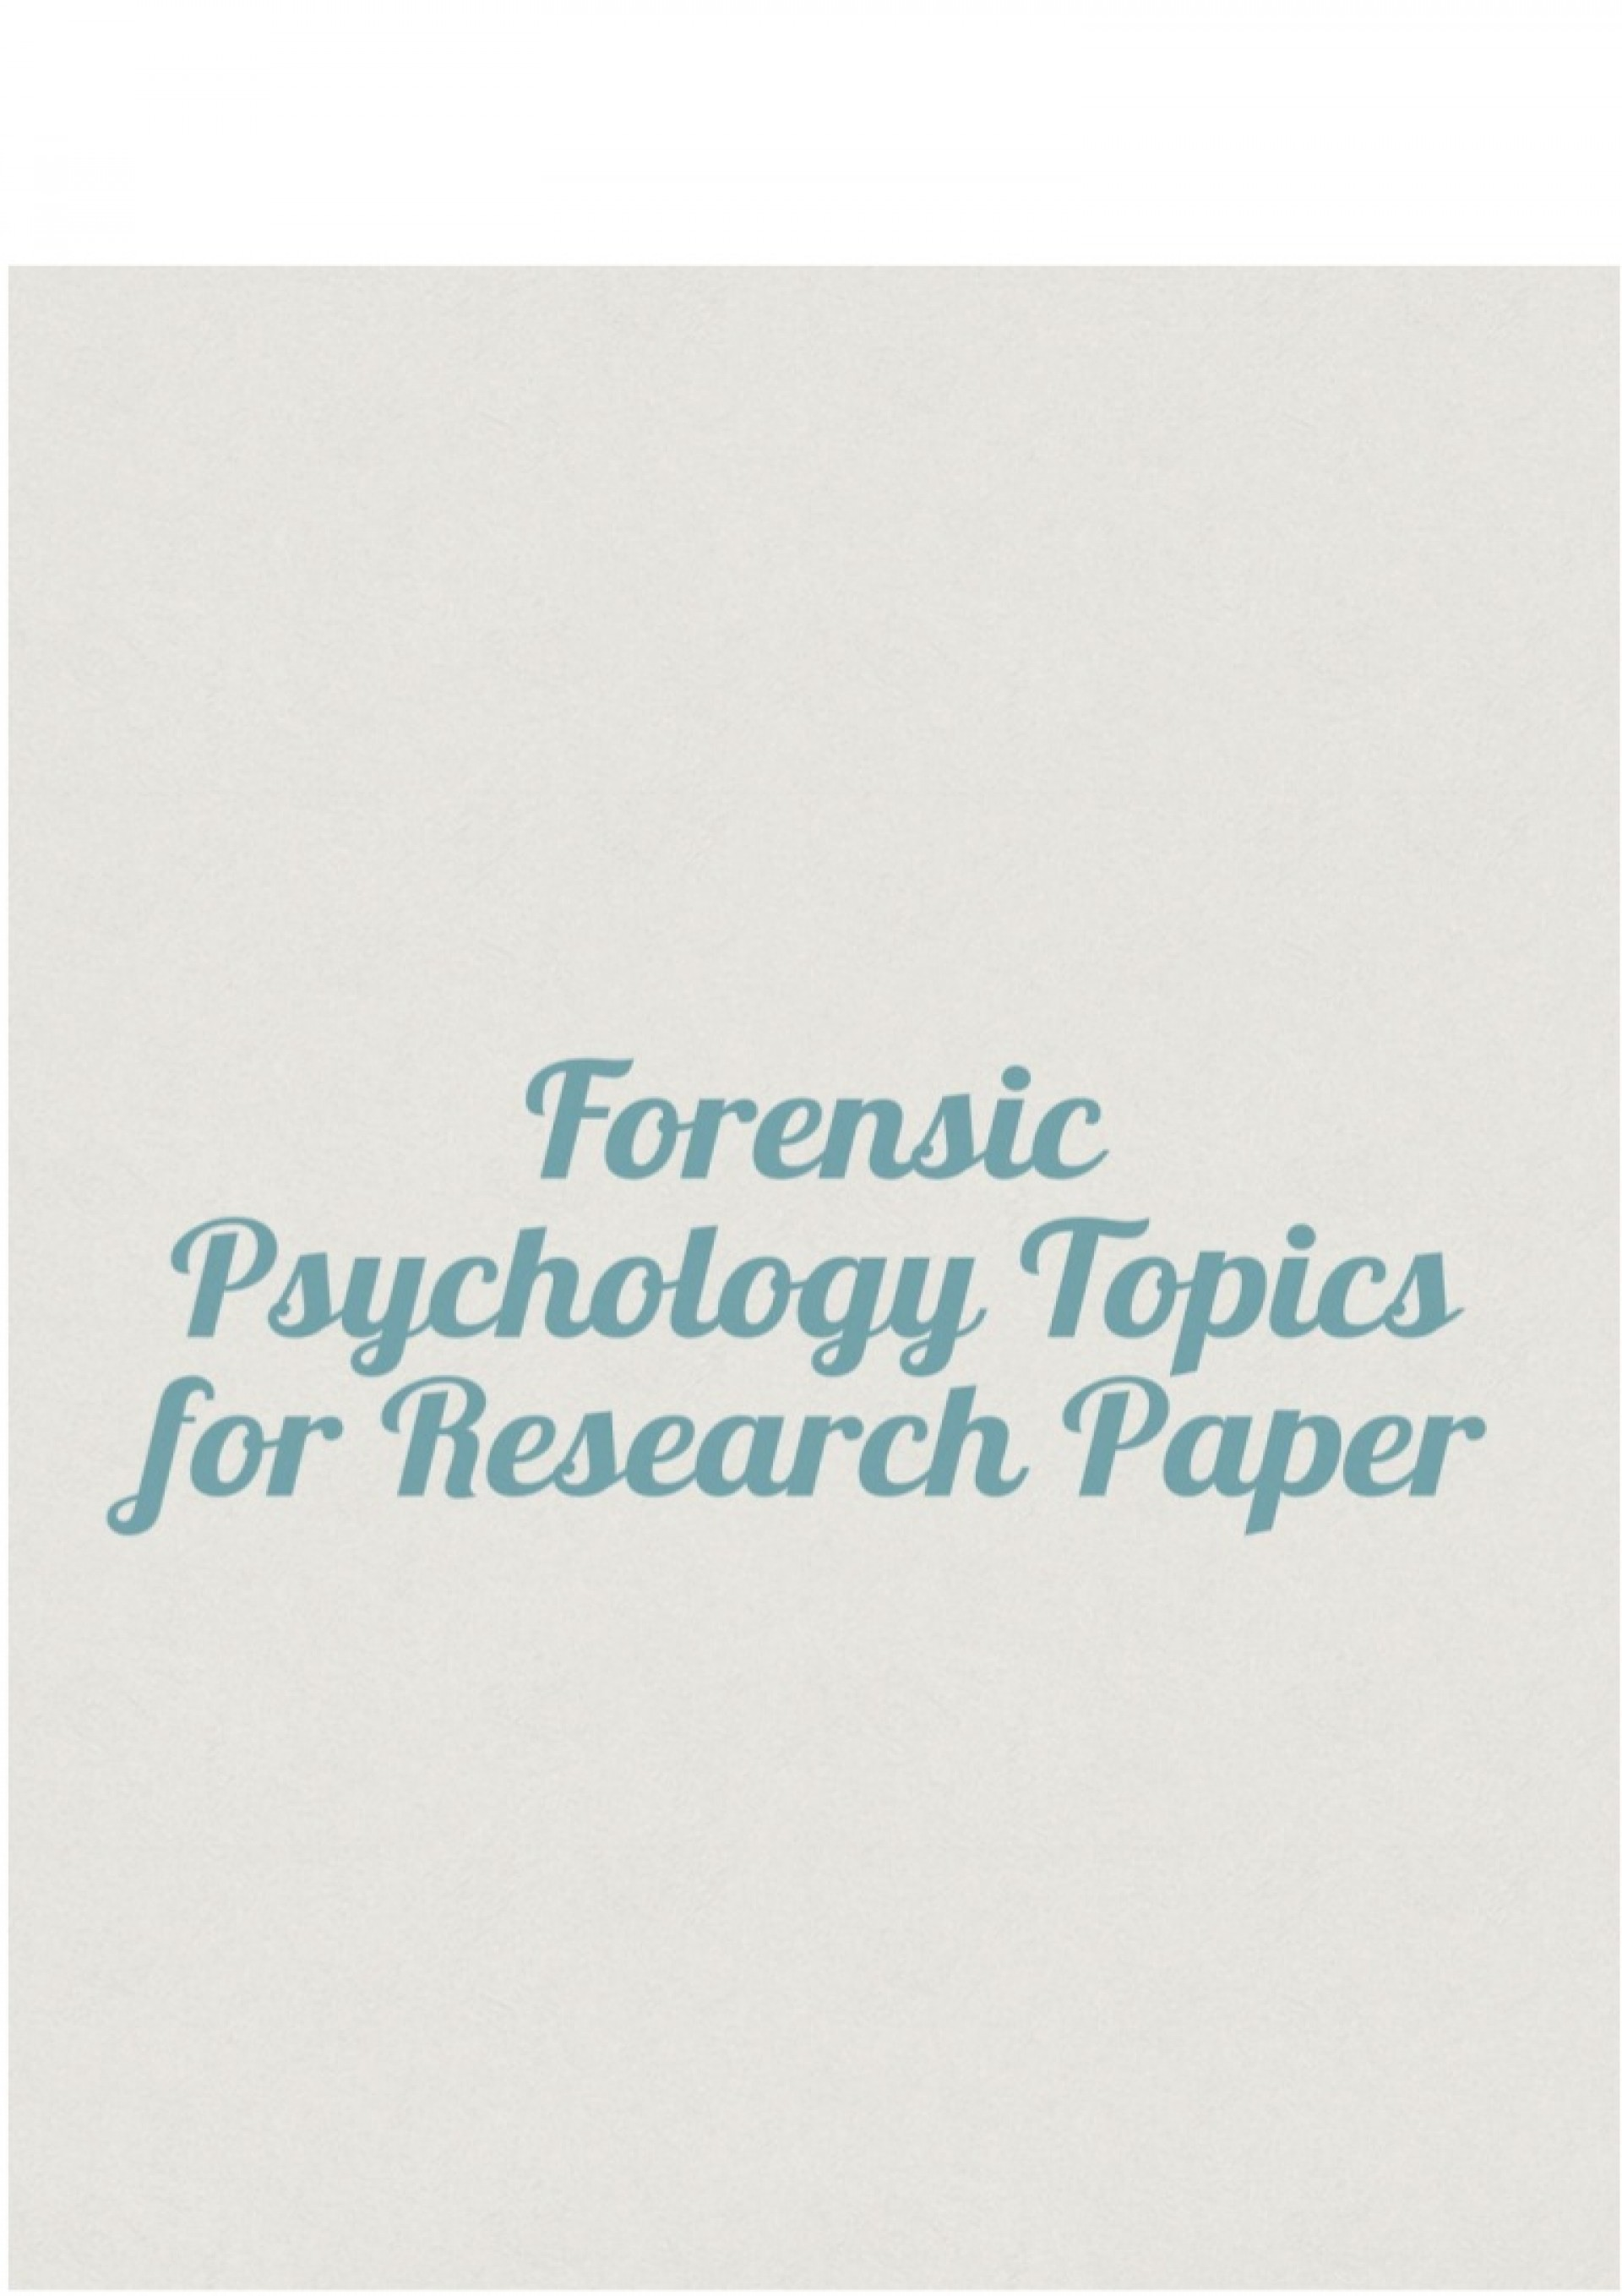 008 Psychology Topics For Research Paper Forensicpsychologytopicsforresearchpaper Thumbnail Wondrous Forensic Child Papers Controversial 1920